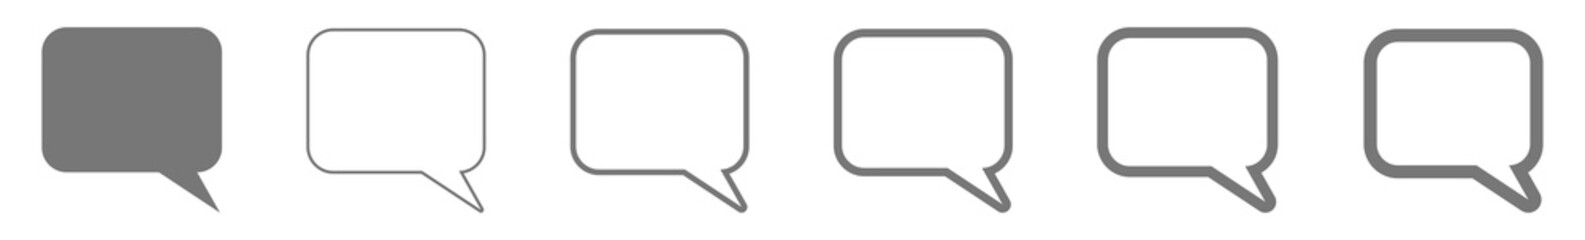 Speech Bubble Balloon Icon gray | Blank Rectangle Rounded Bubbles | Communication Symbol | Message Logo | Cartoon Sign | Isolated | Variations Fototapete